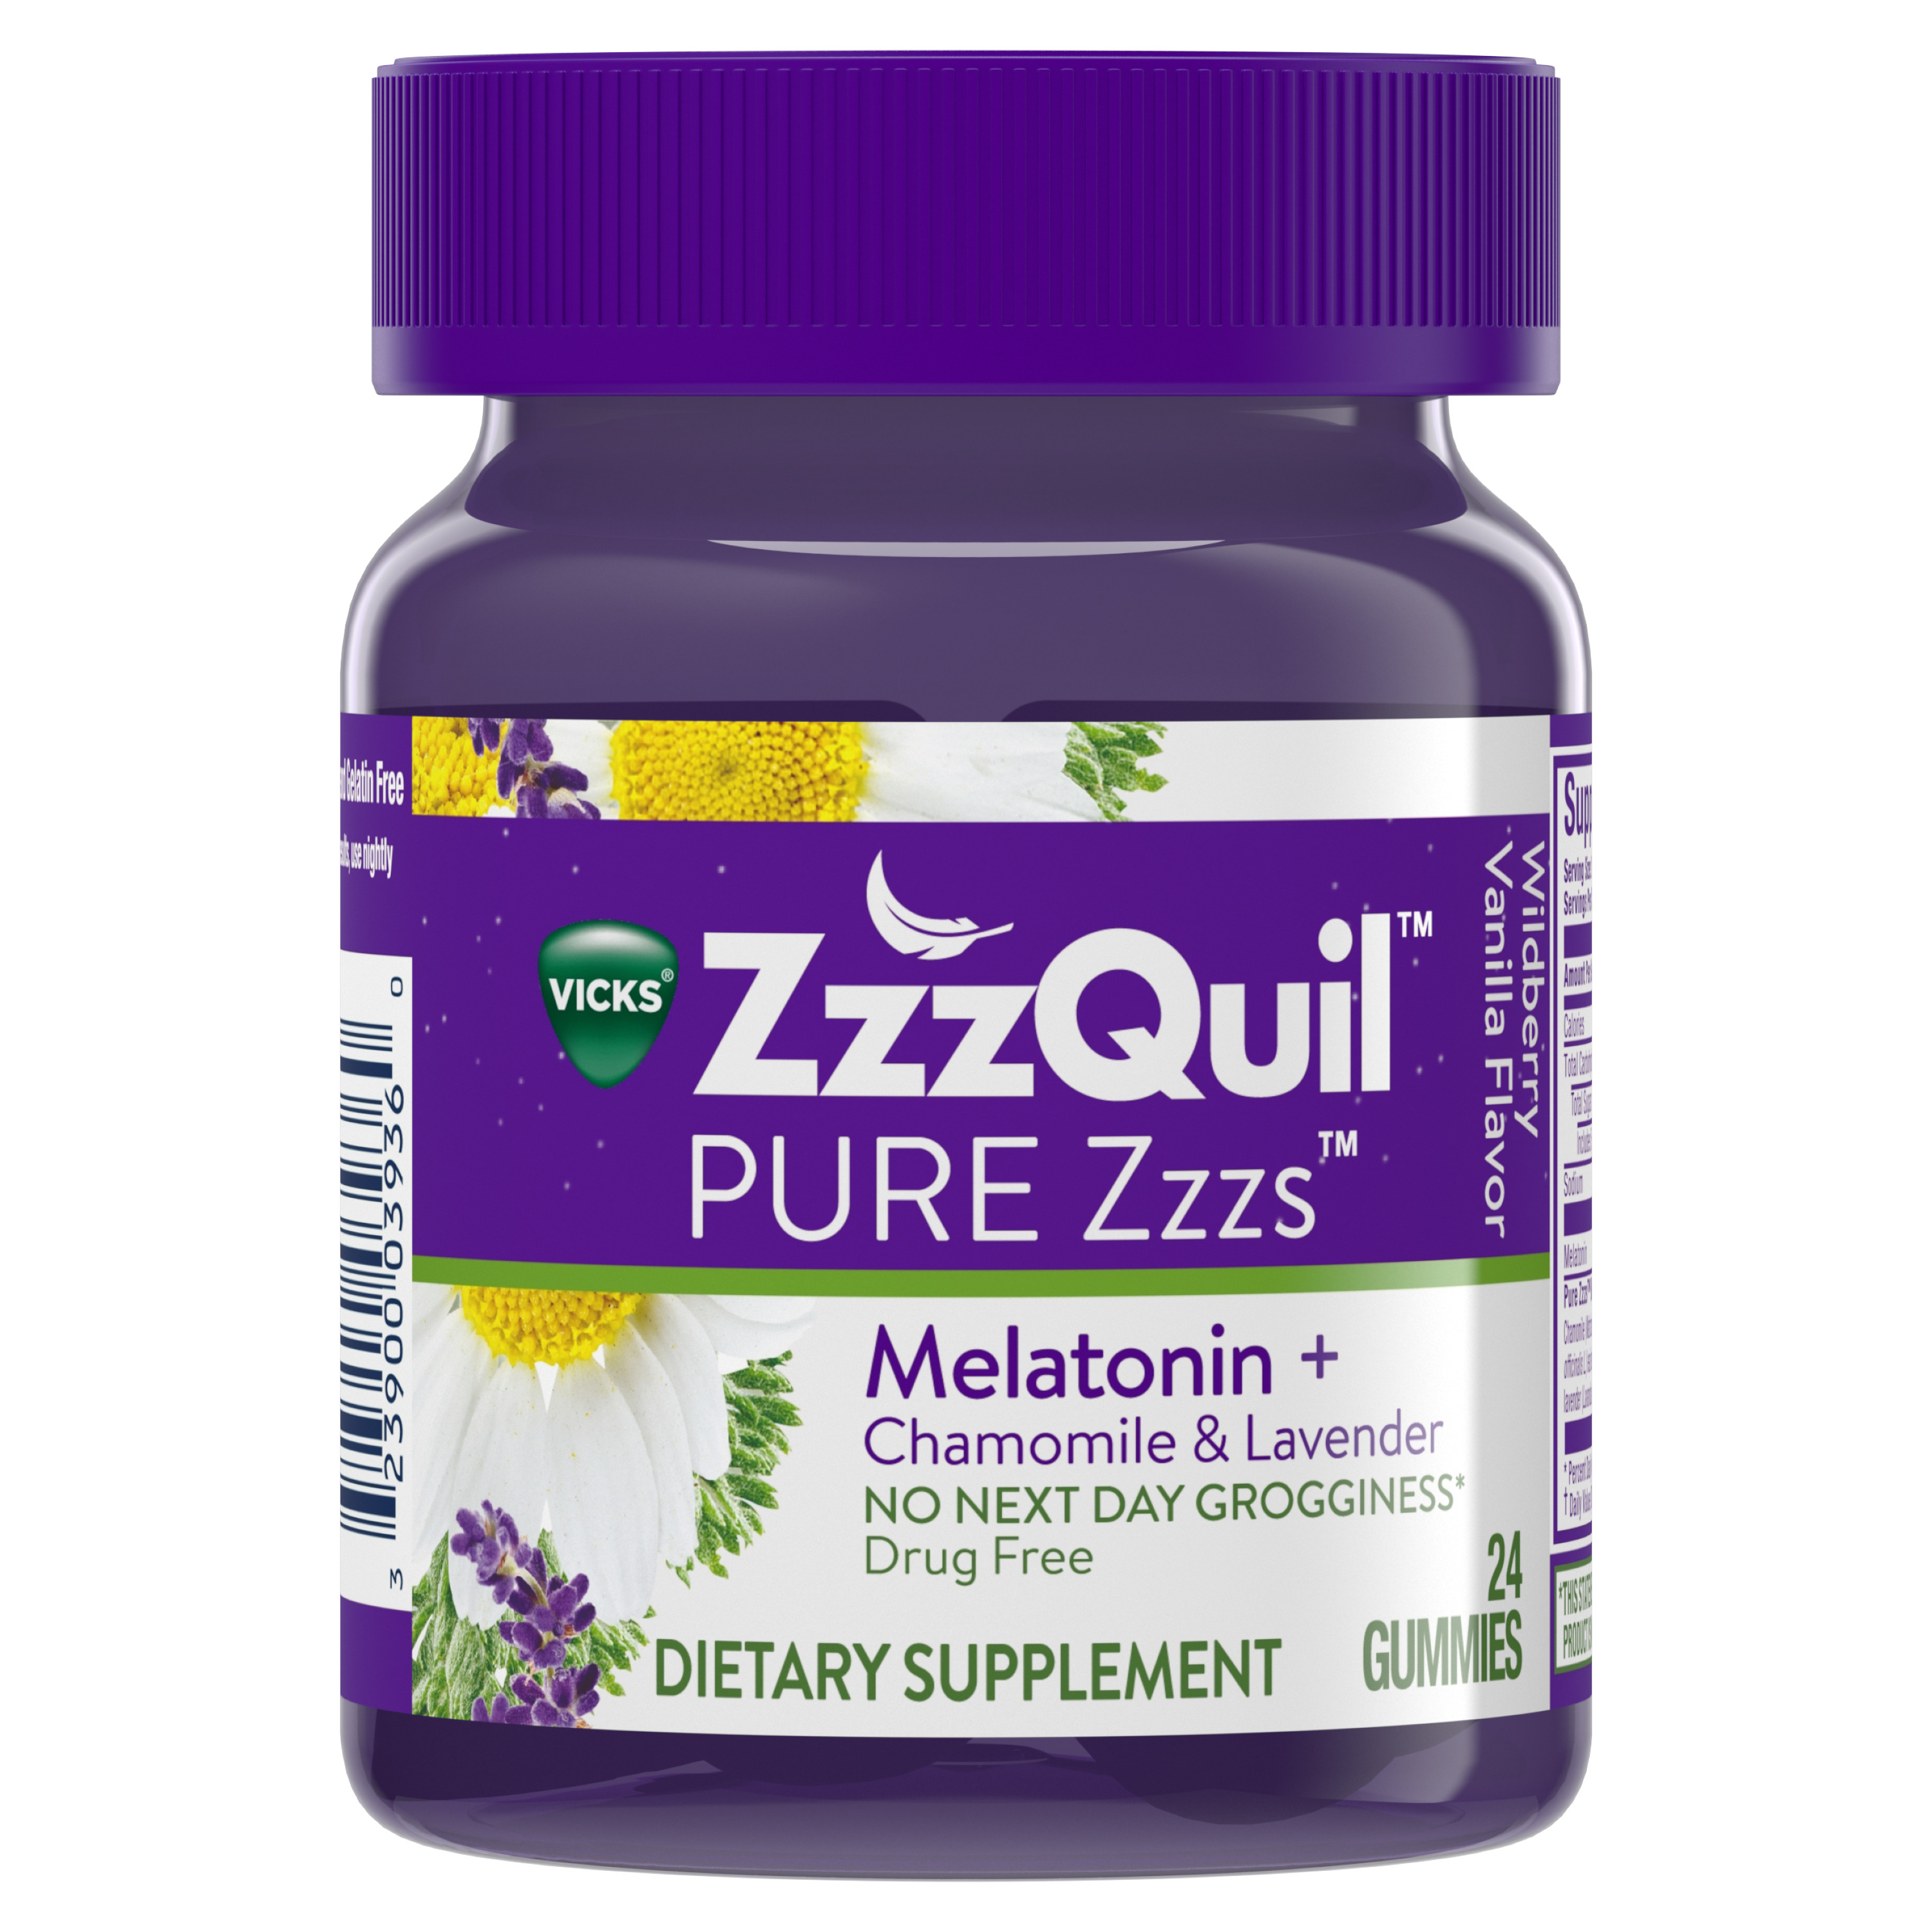 PURE Zzzs Melatonin Natural Flavor Sleep Aid Gummies with Chamomile & Lavender by Vicks ZzzQuil, 1mg per gummy, 24 ct